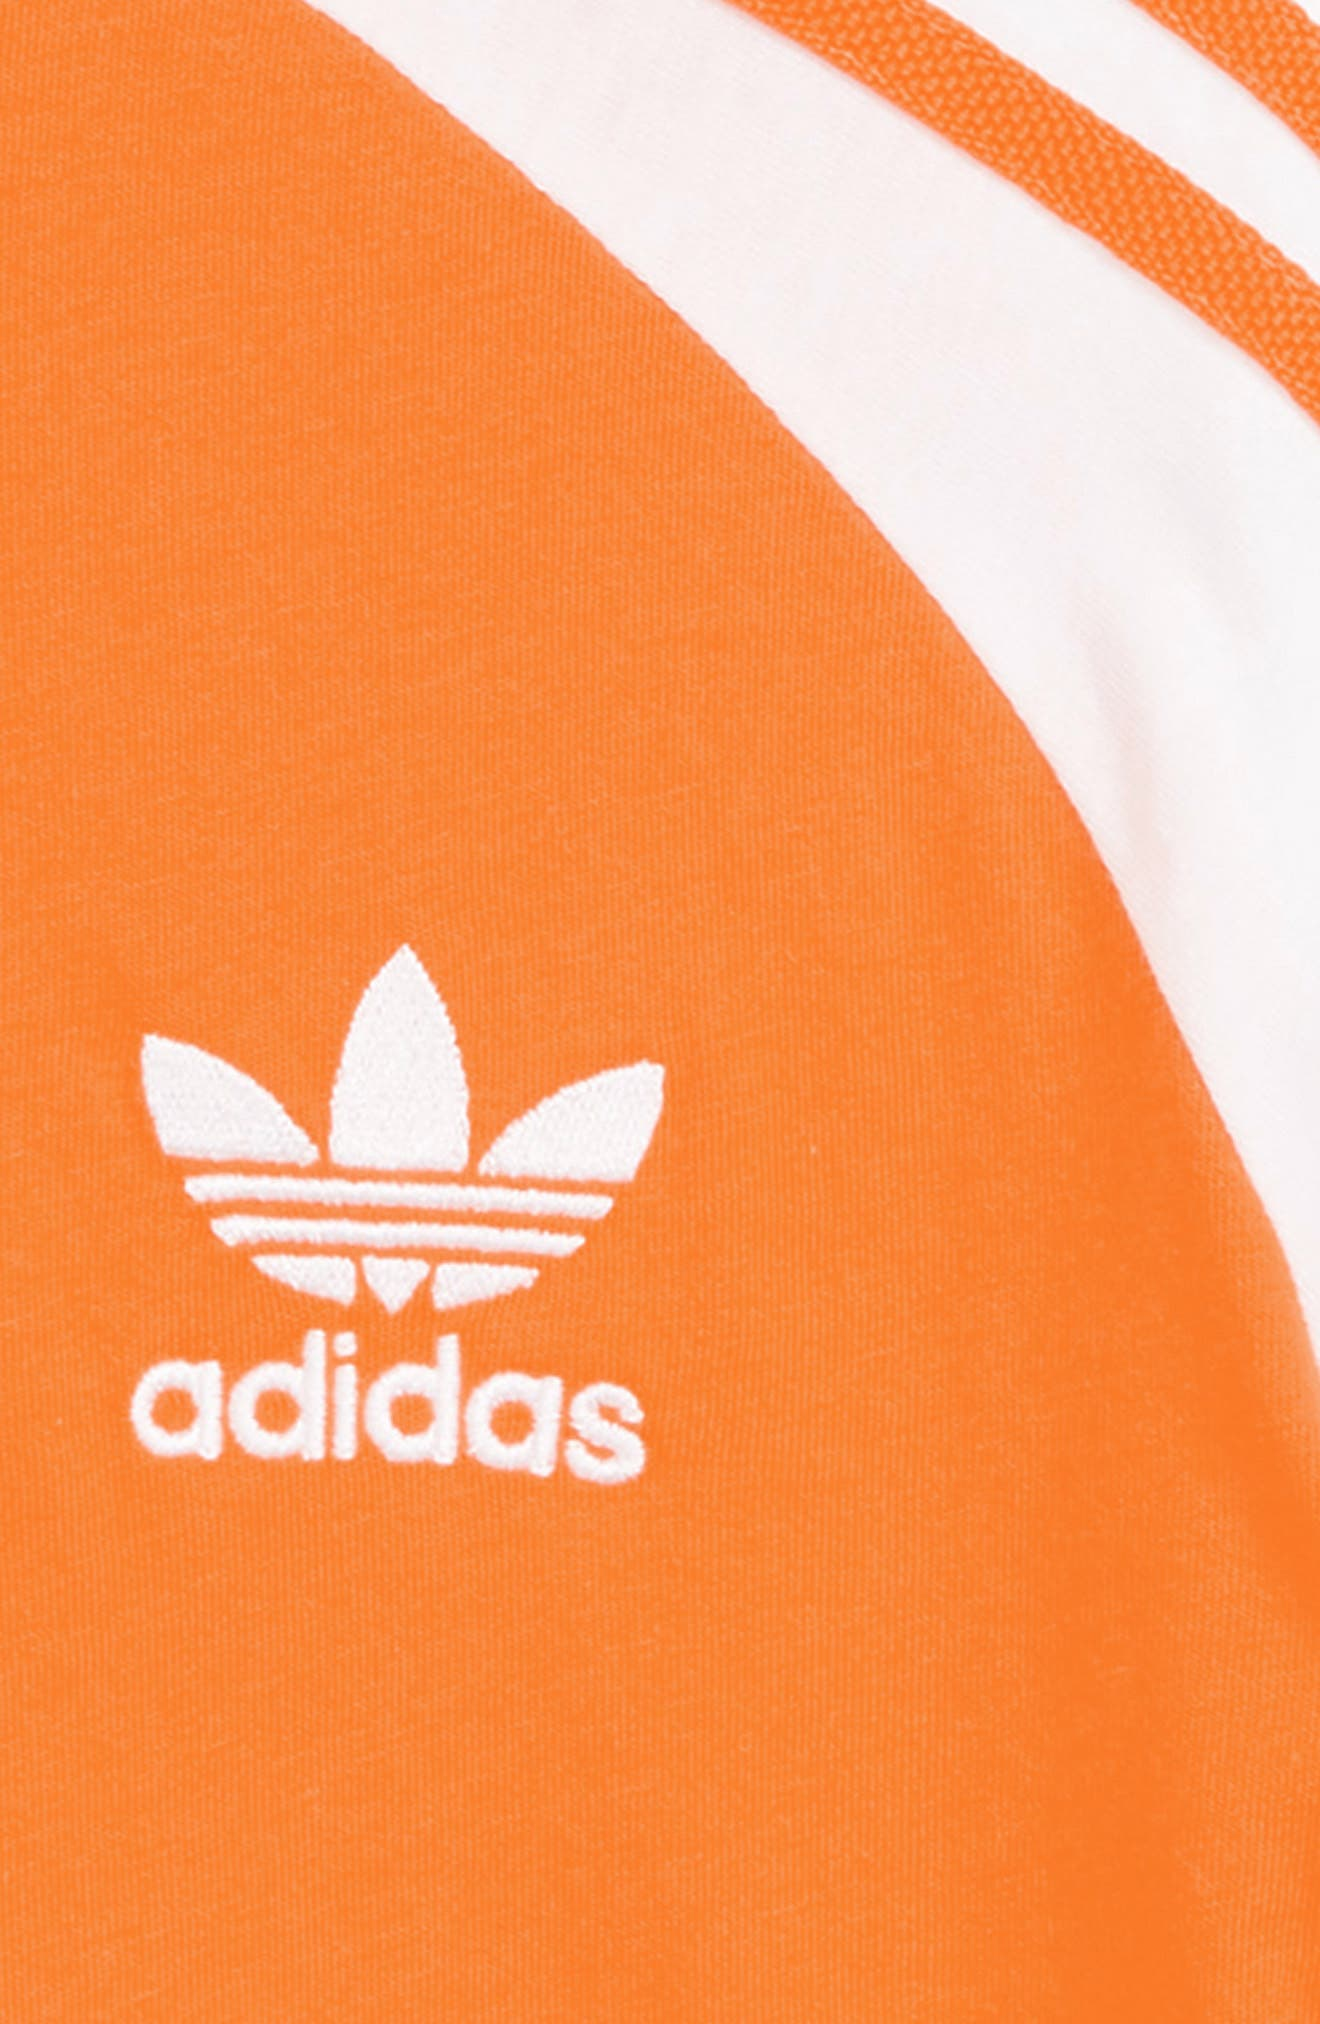 adidas Junior California T-Shirt,                             Alternate thumbnail 2, color,                             ORANGE/ WHITE